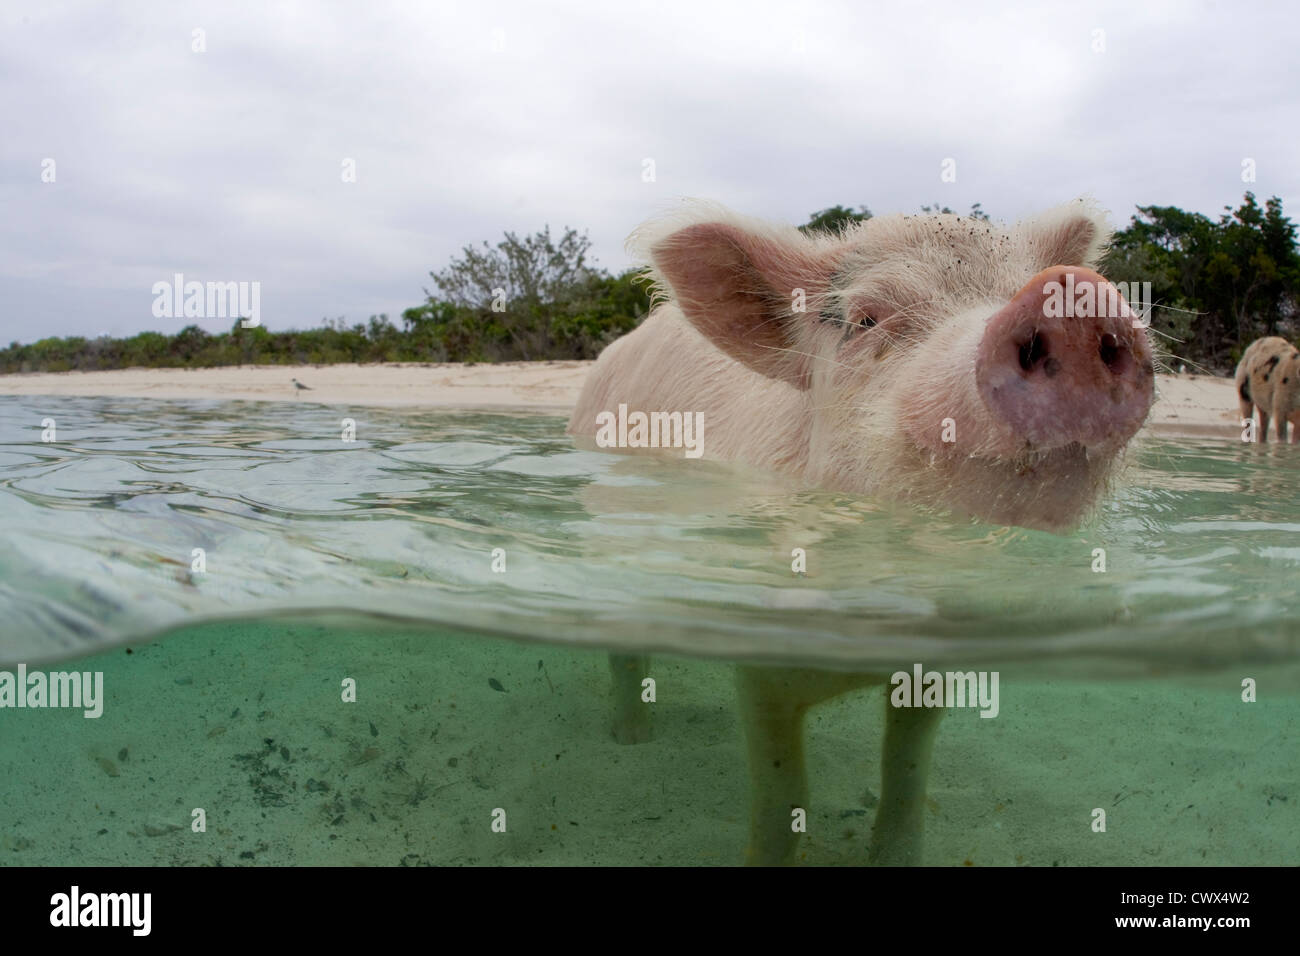 Cay Stock Photos & Cay Stock Images - Alamy